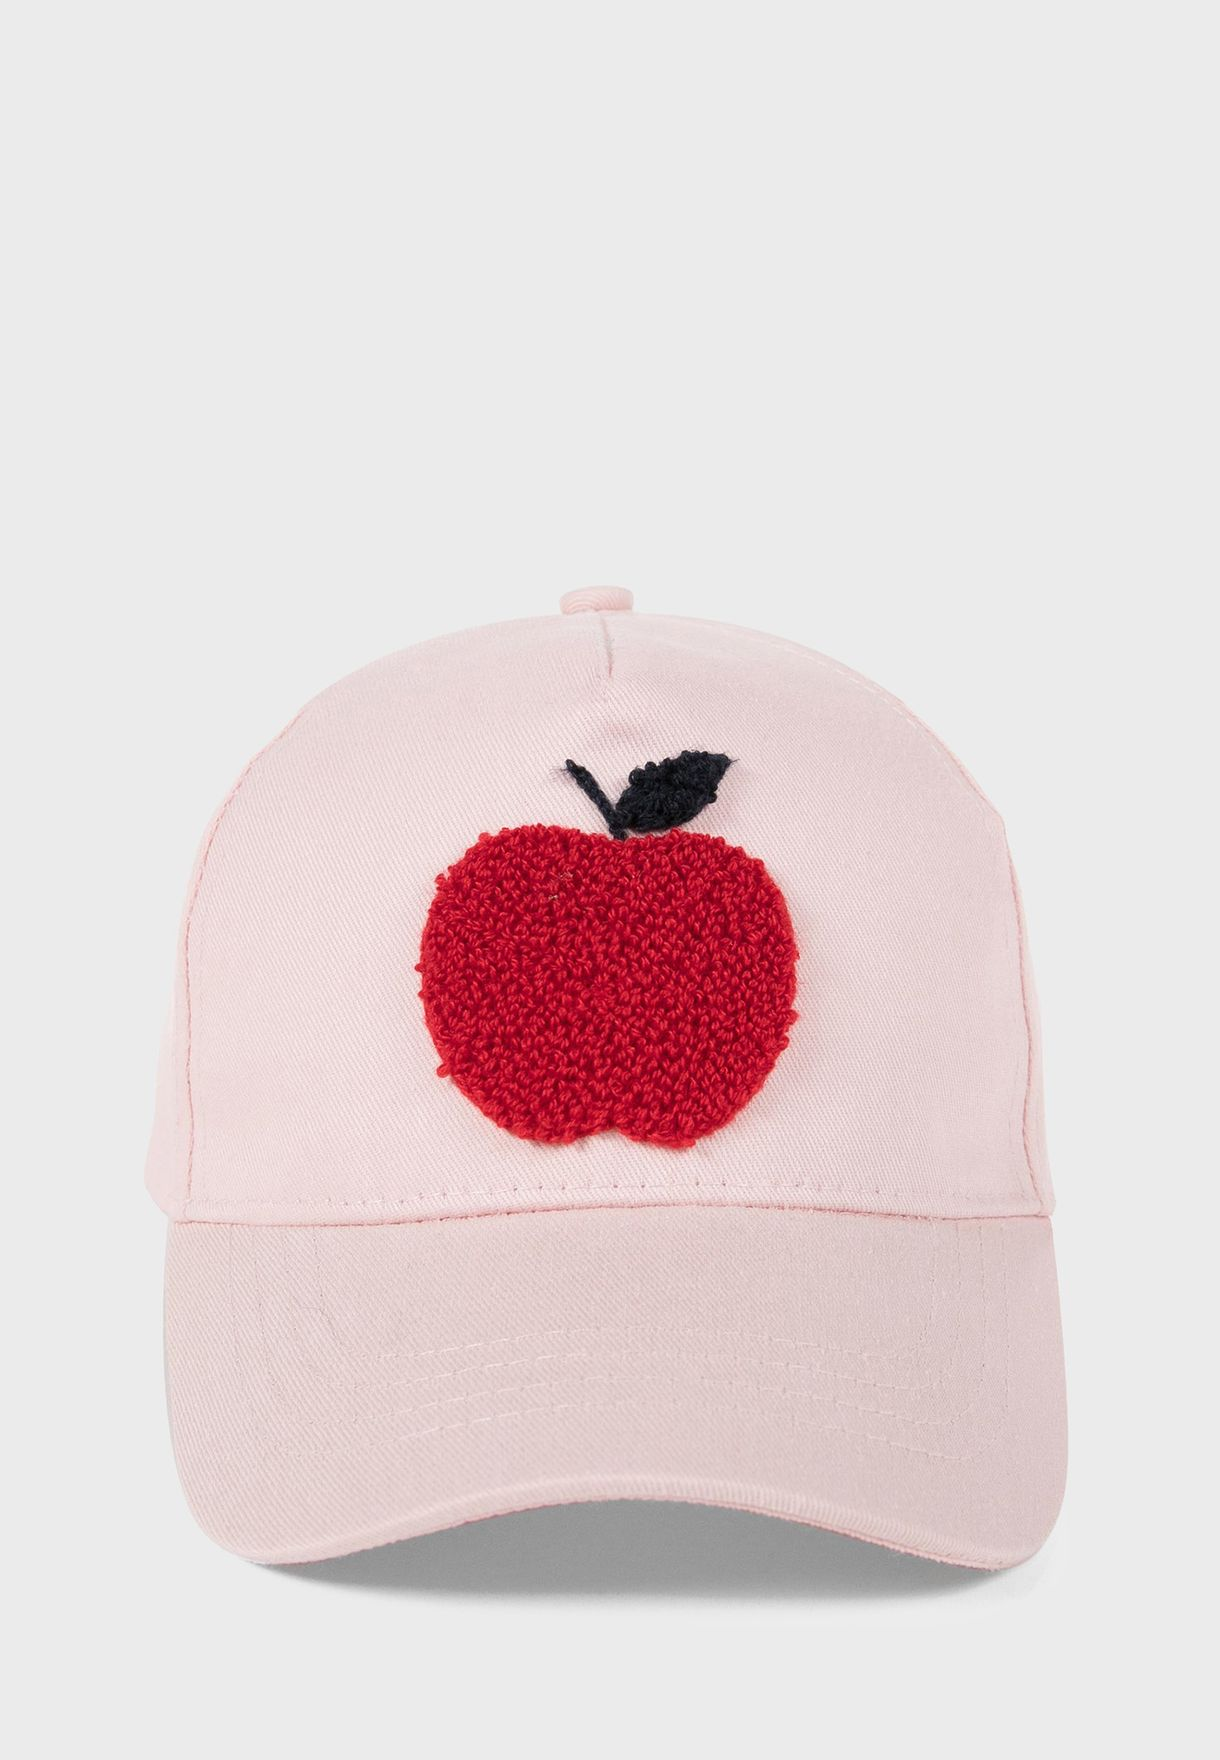 Kids Embroidered Apple Cap